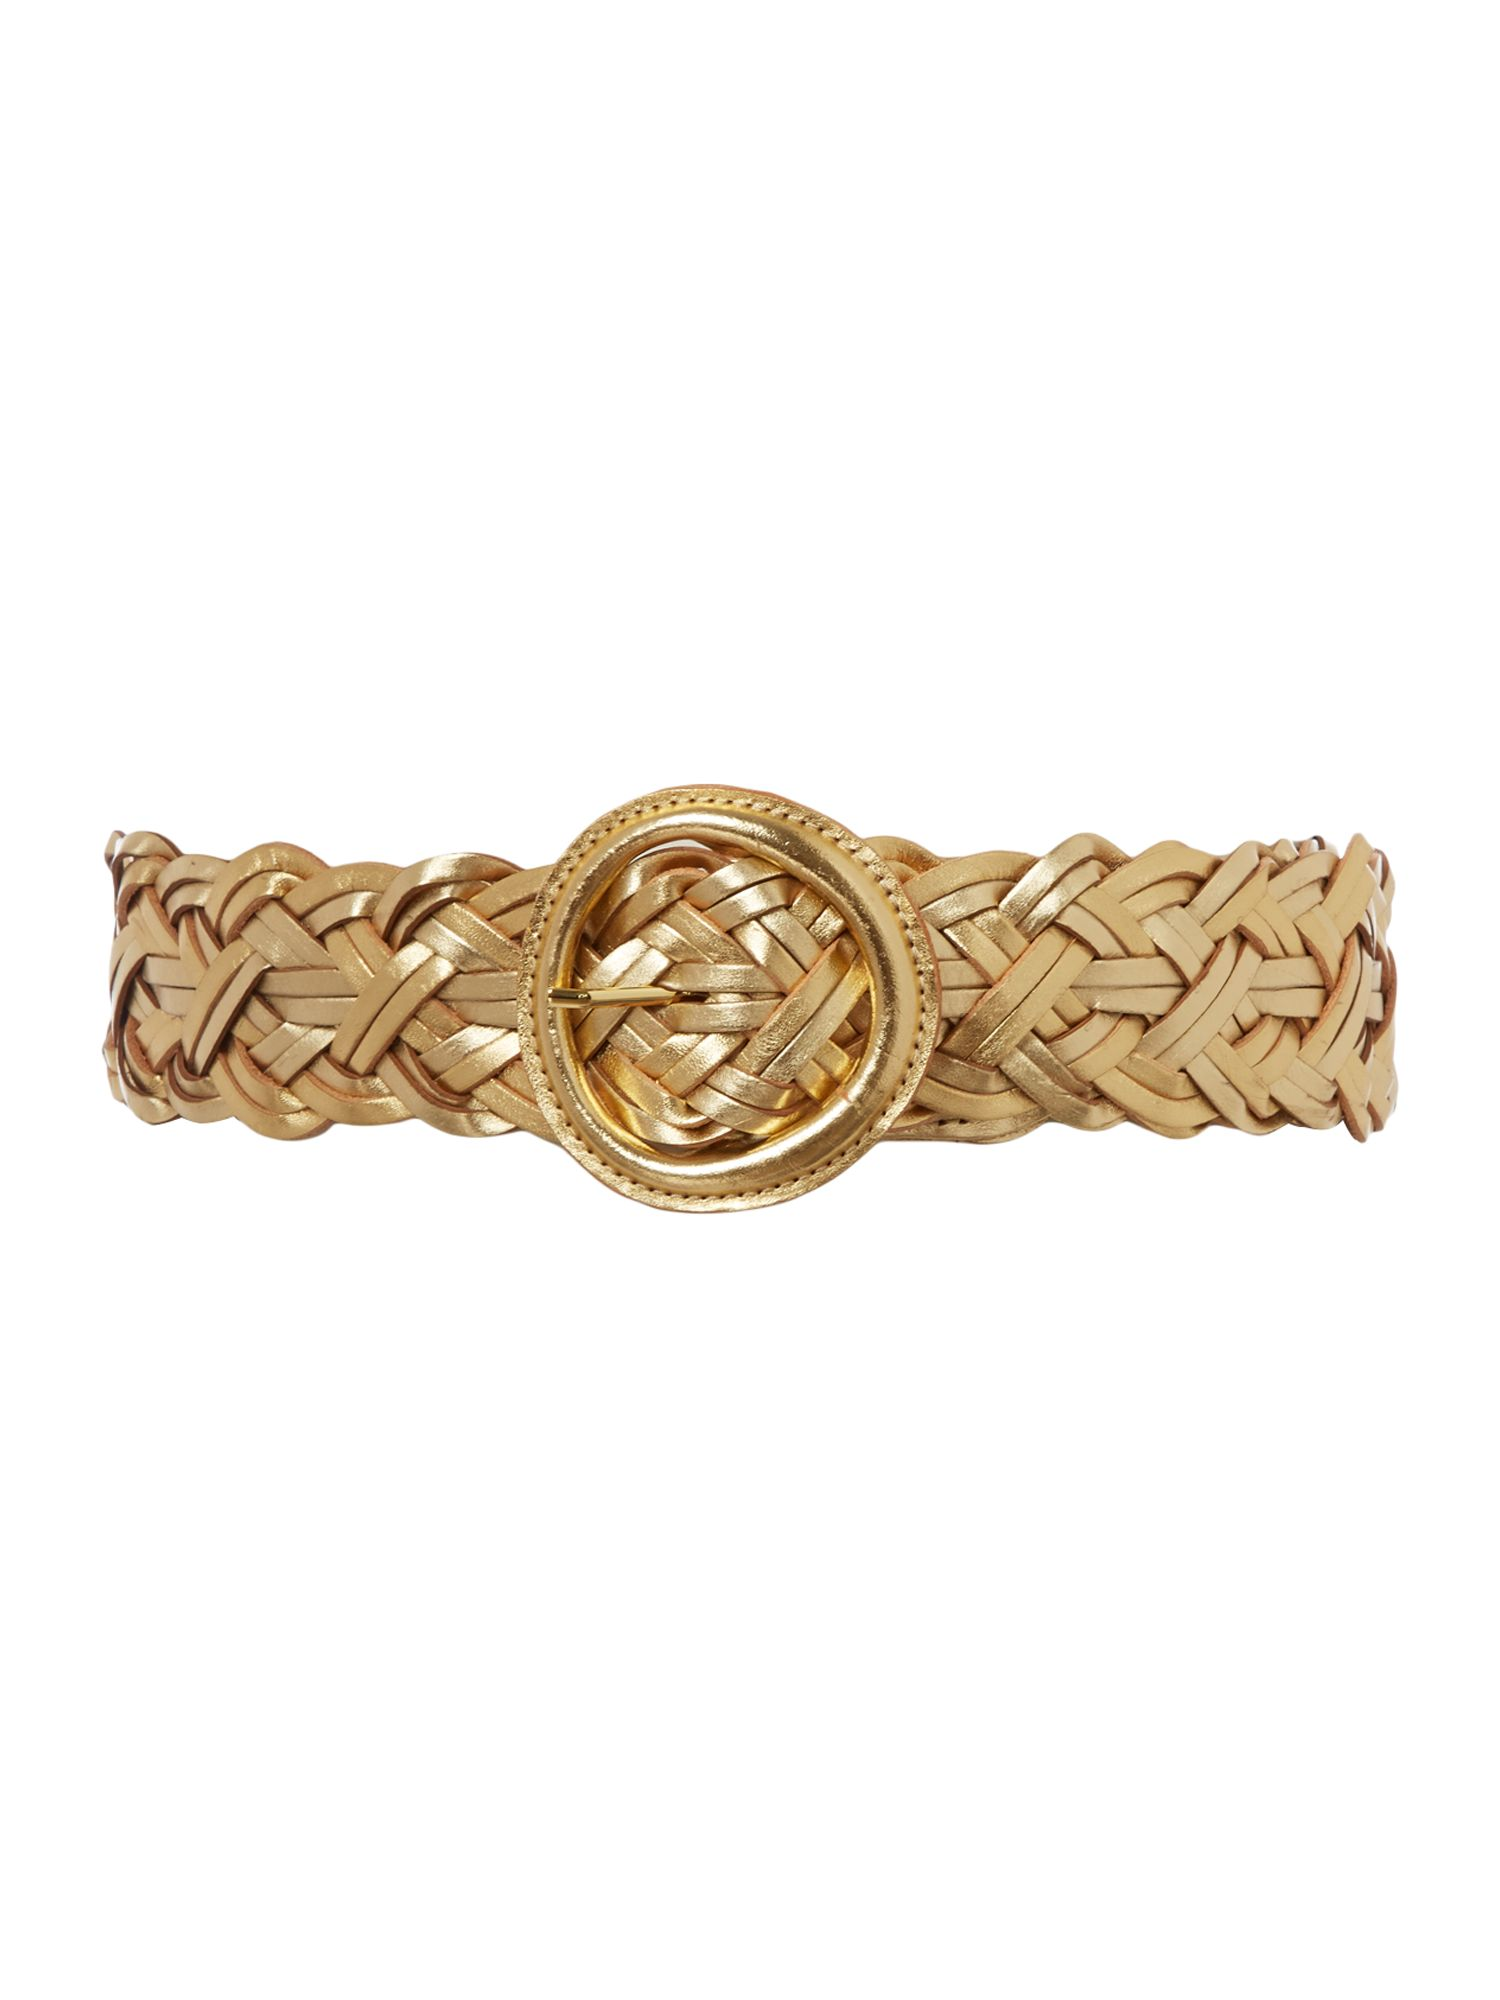 Braided gold belt